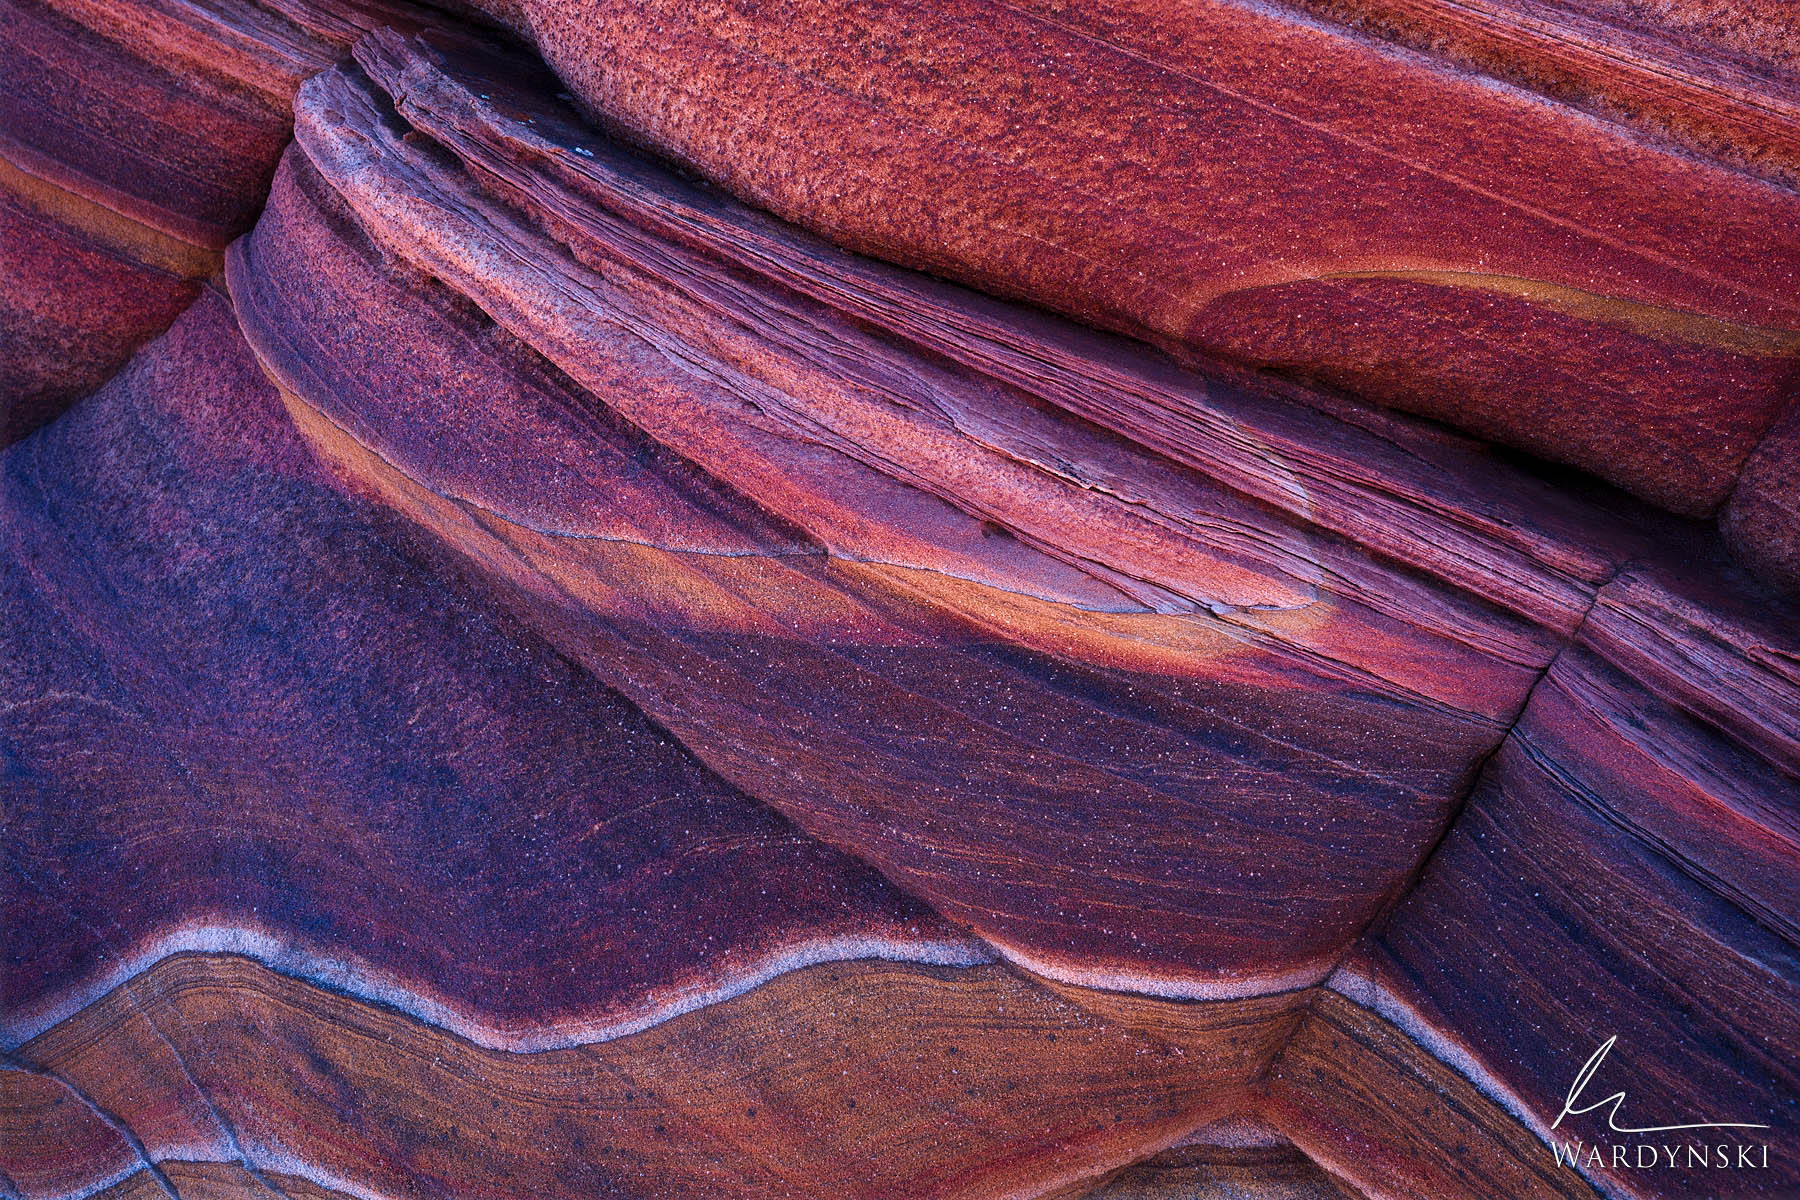 Fine Art Print | Limited Edition of 25  Purple and red striations swirl through multi colored sandstone like hard candy. The...